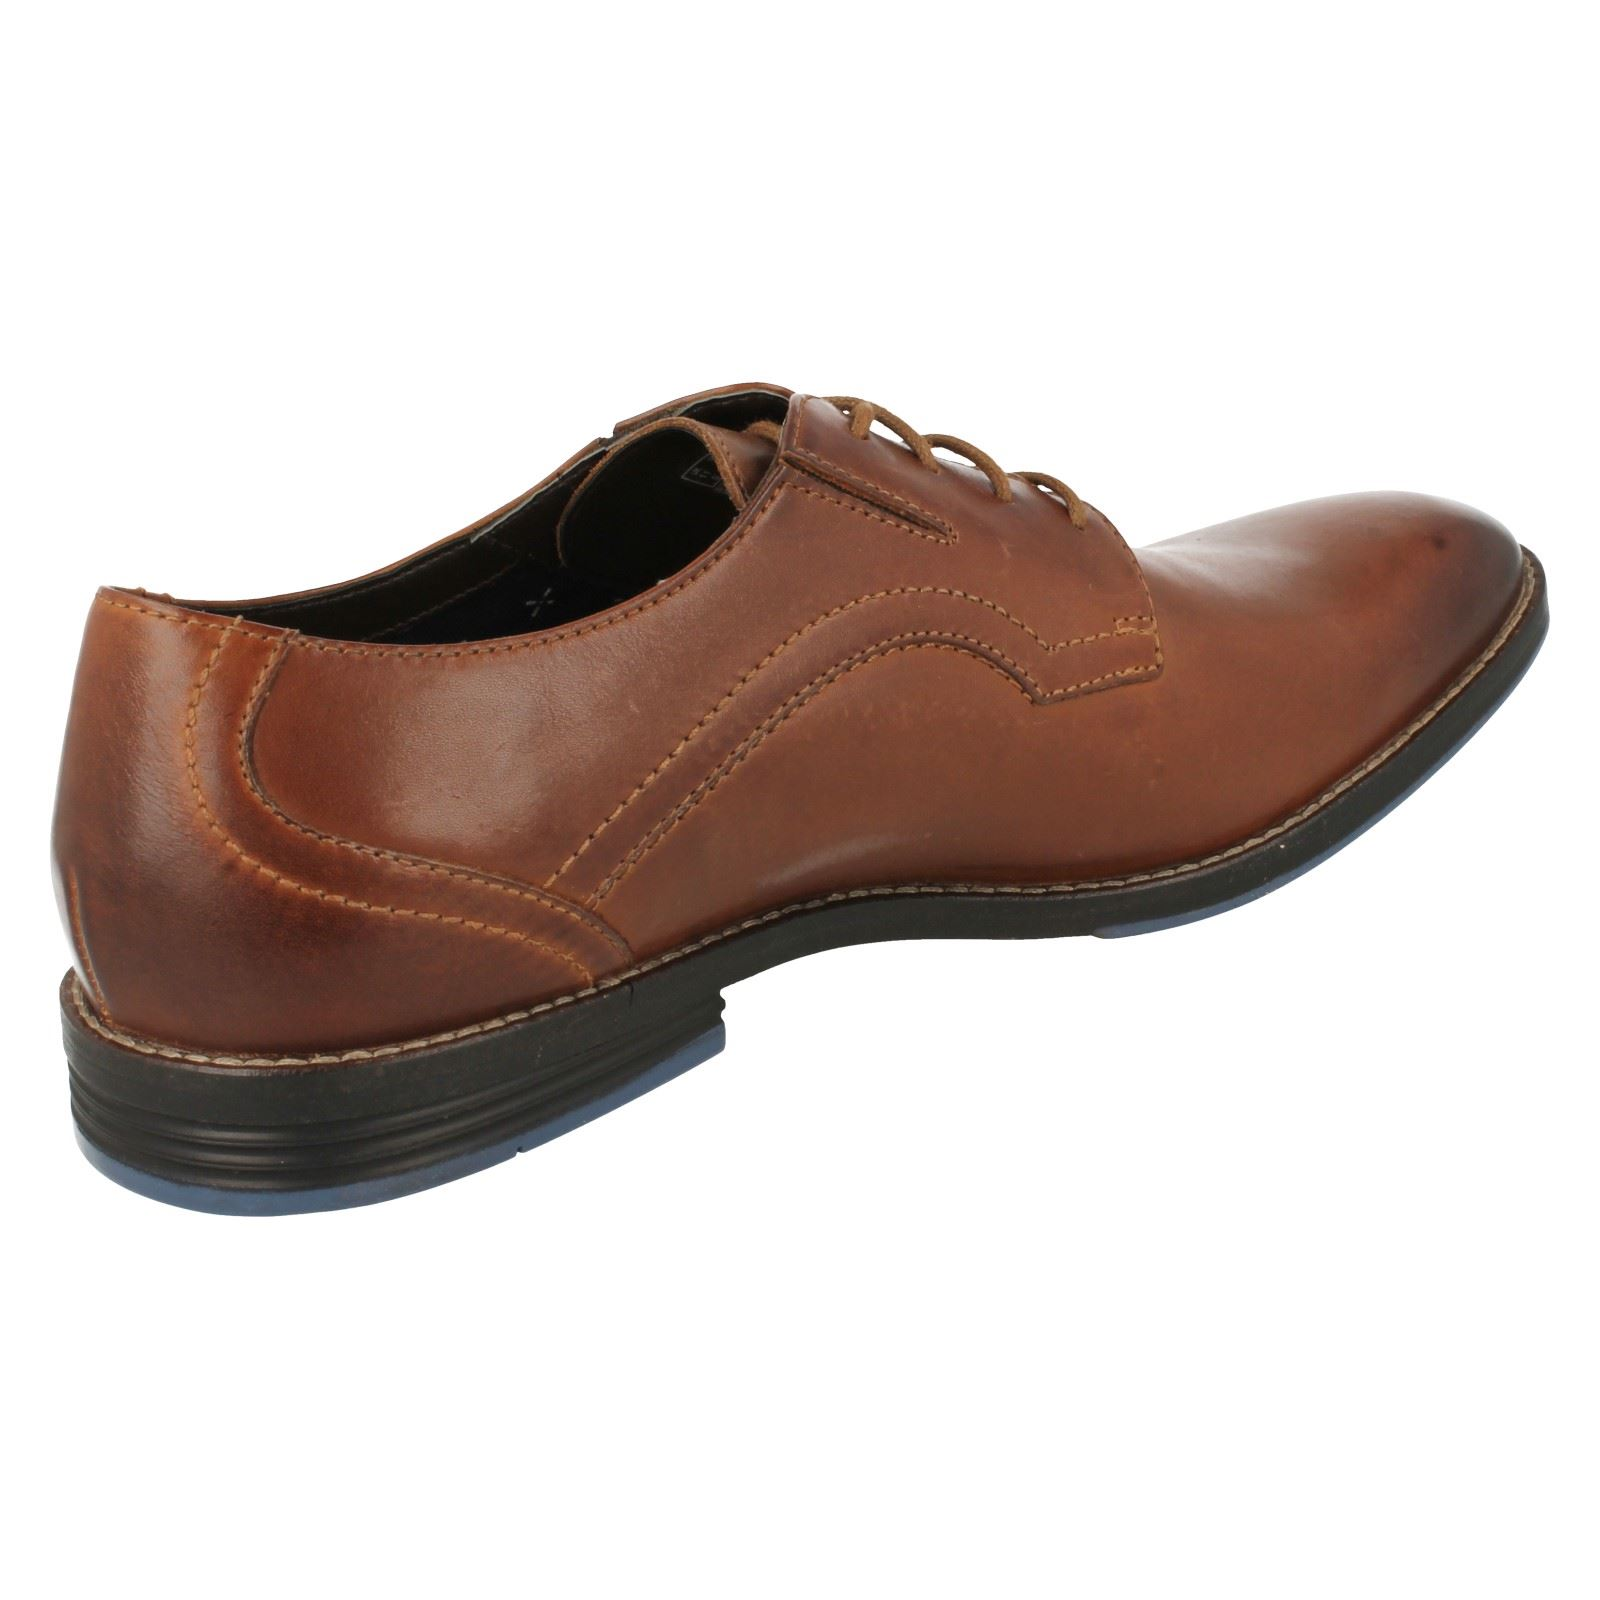 Mens Clarks Formal Schuhes Schuhes Formal Prangley Walk d9d879